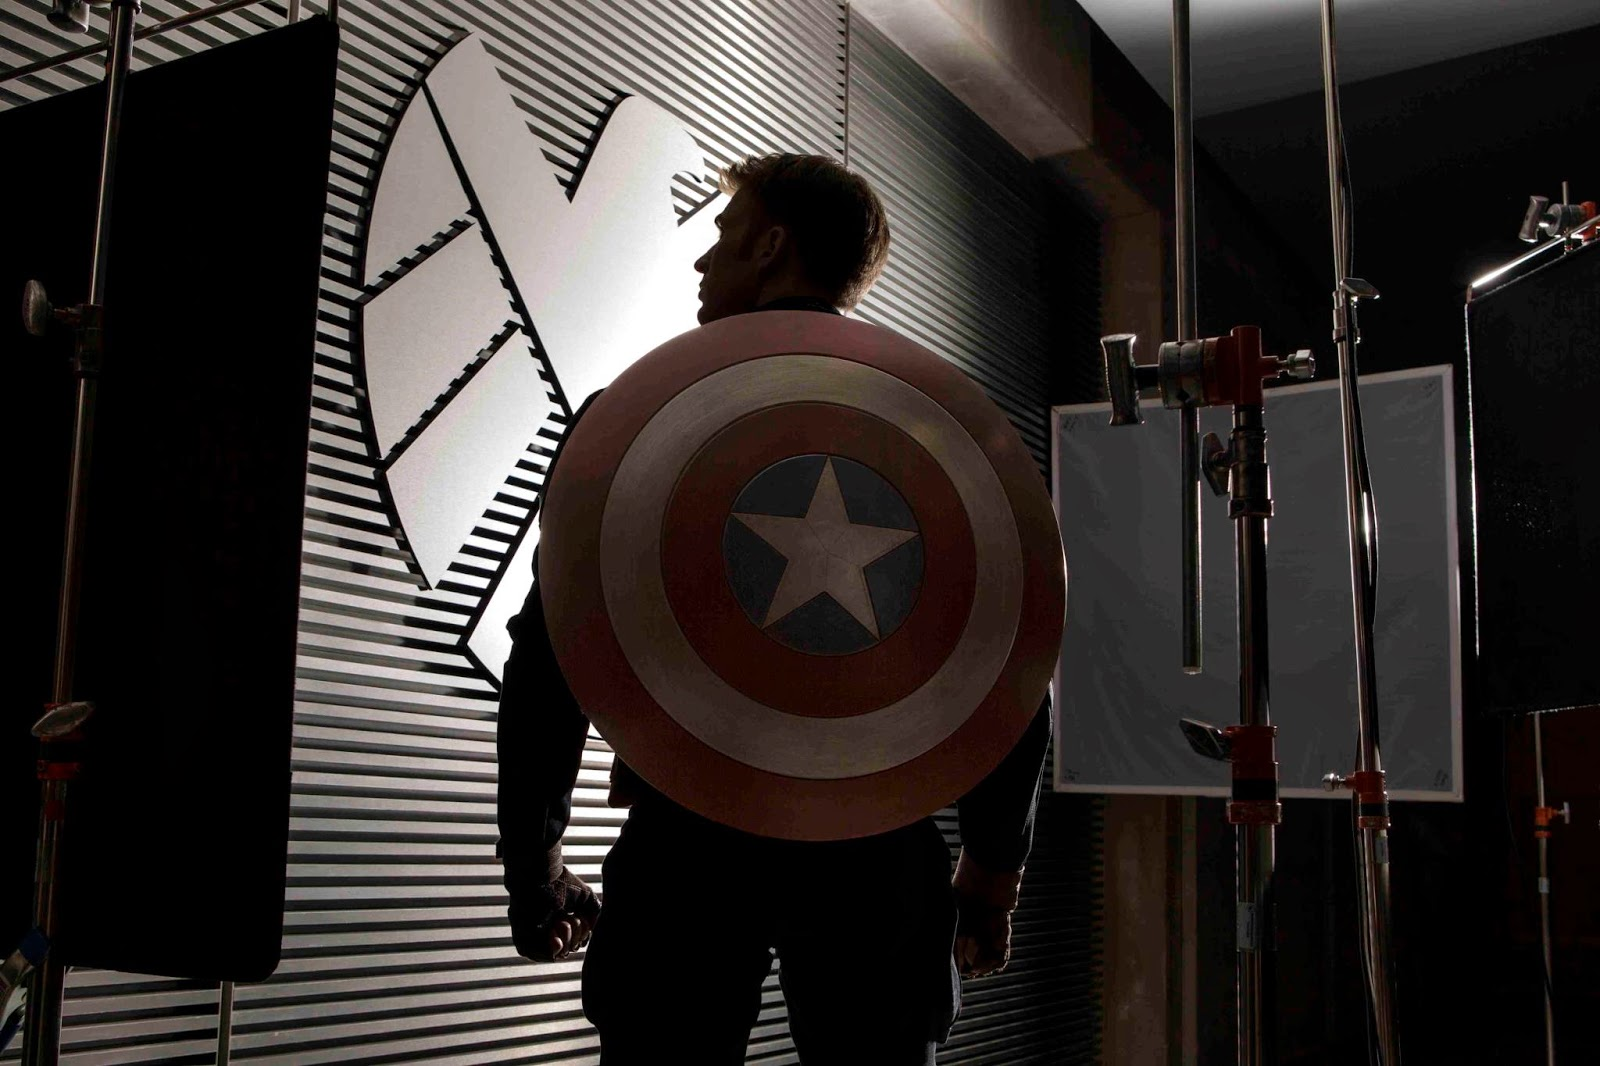 S.H.I.E.L.D. and Captain America movie review